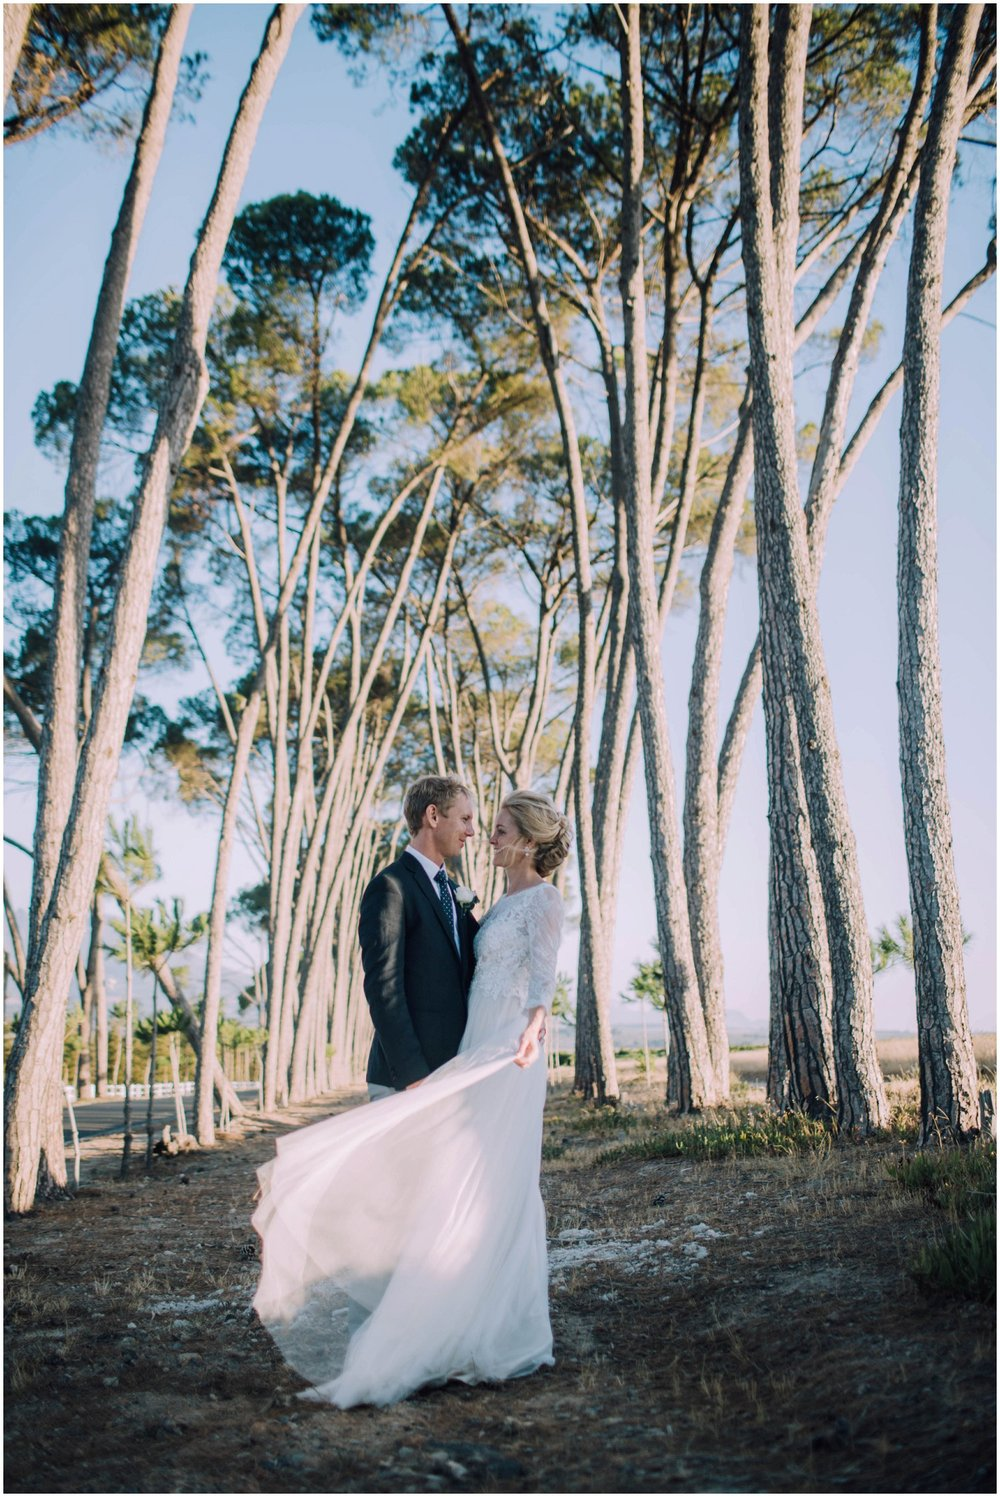 Top Wedding Photographer Cape Town South Africa Artistic Creative Documentary Wedding Photography Rue Kruger_0751.jpg